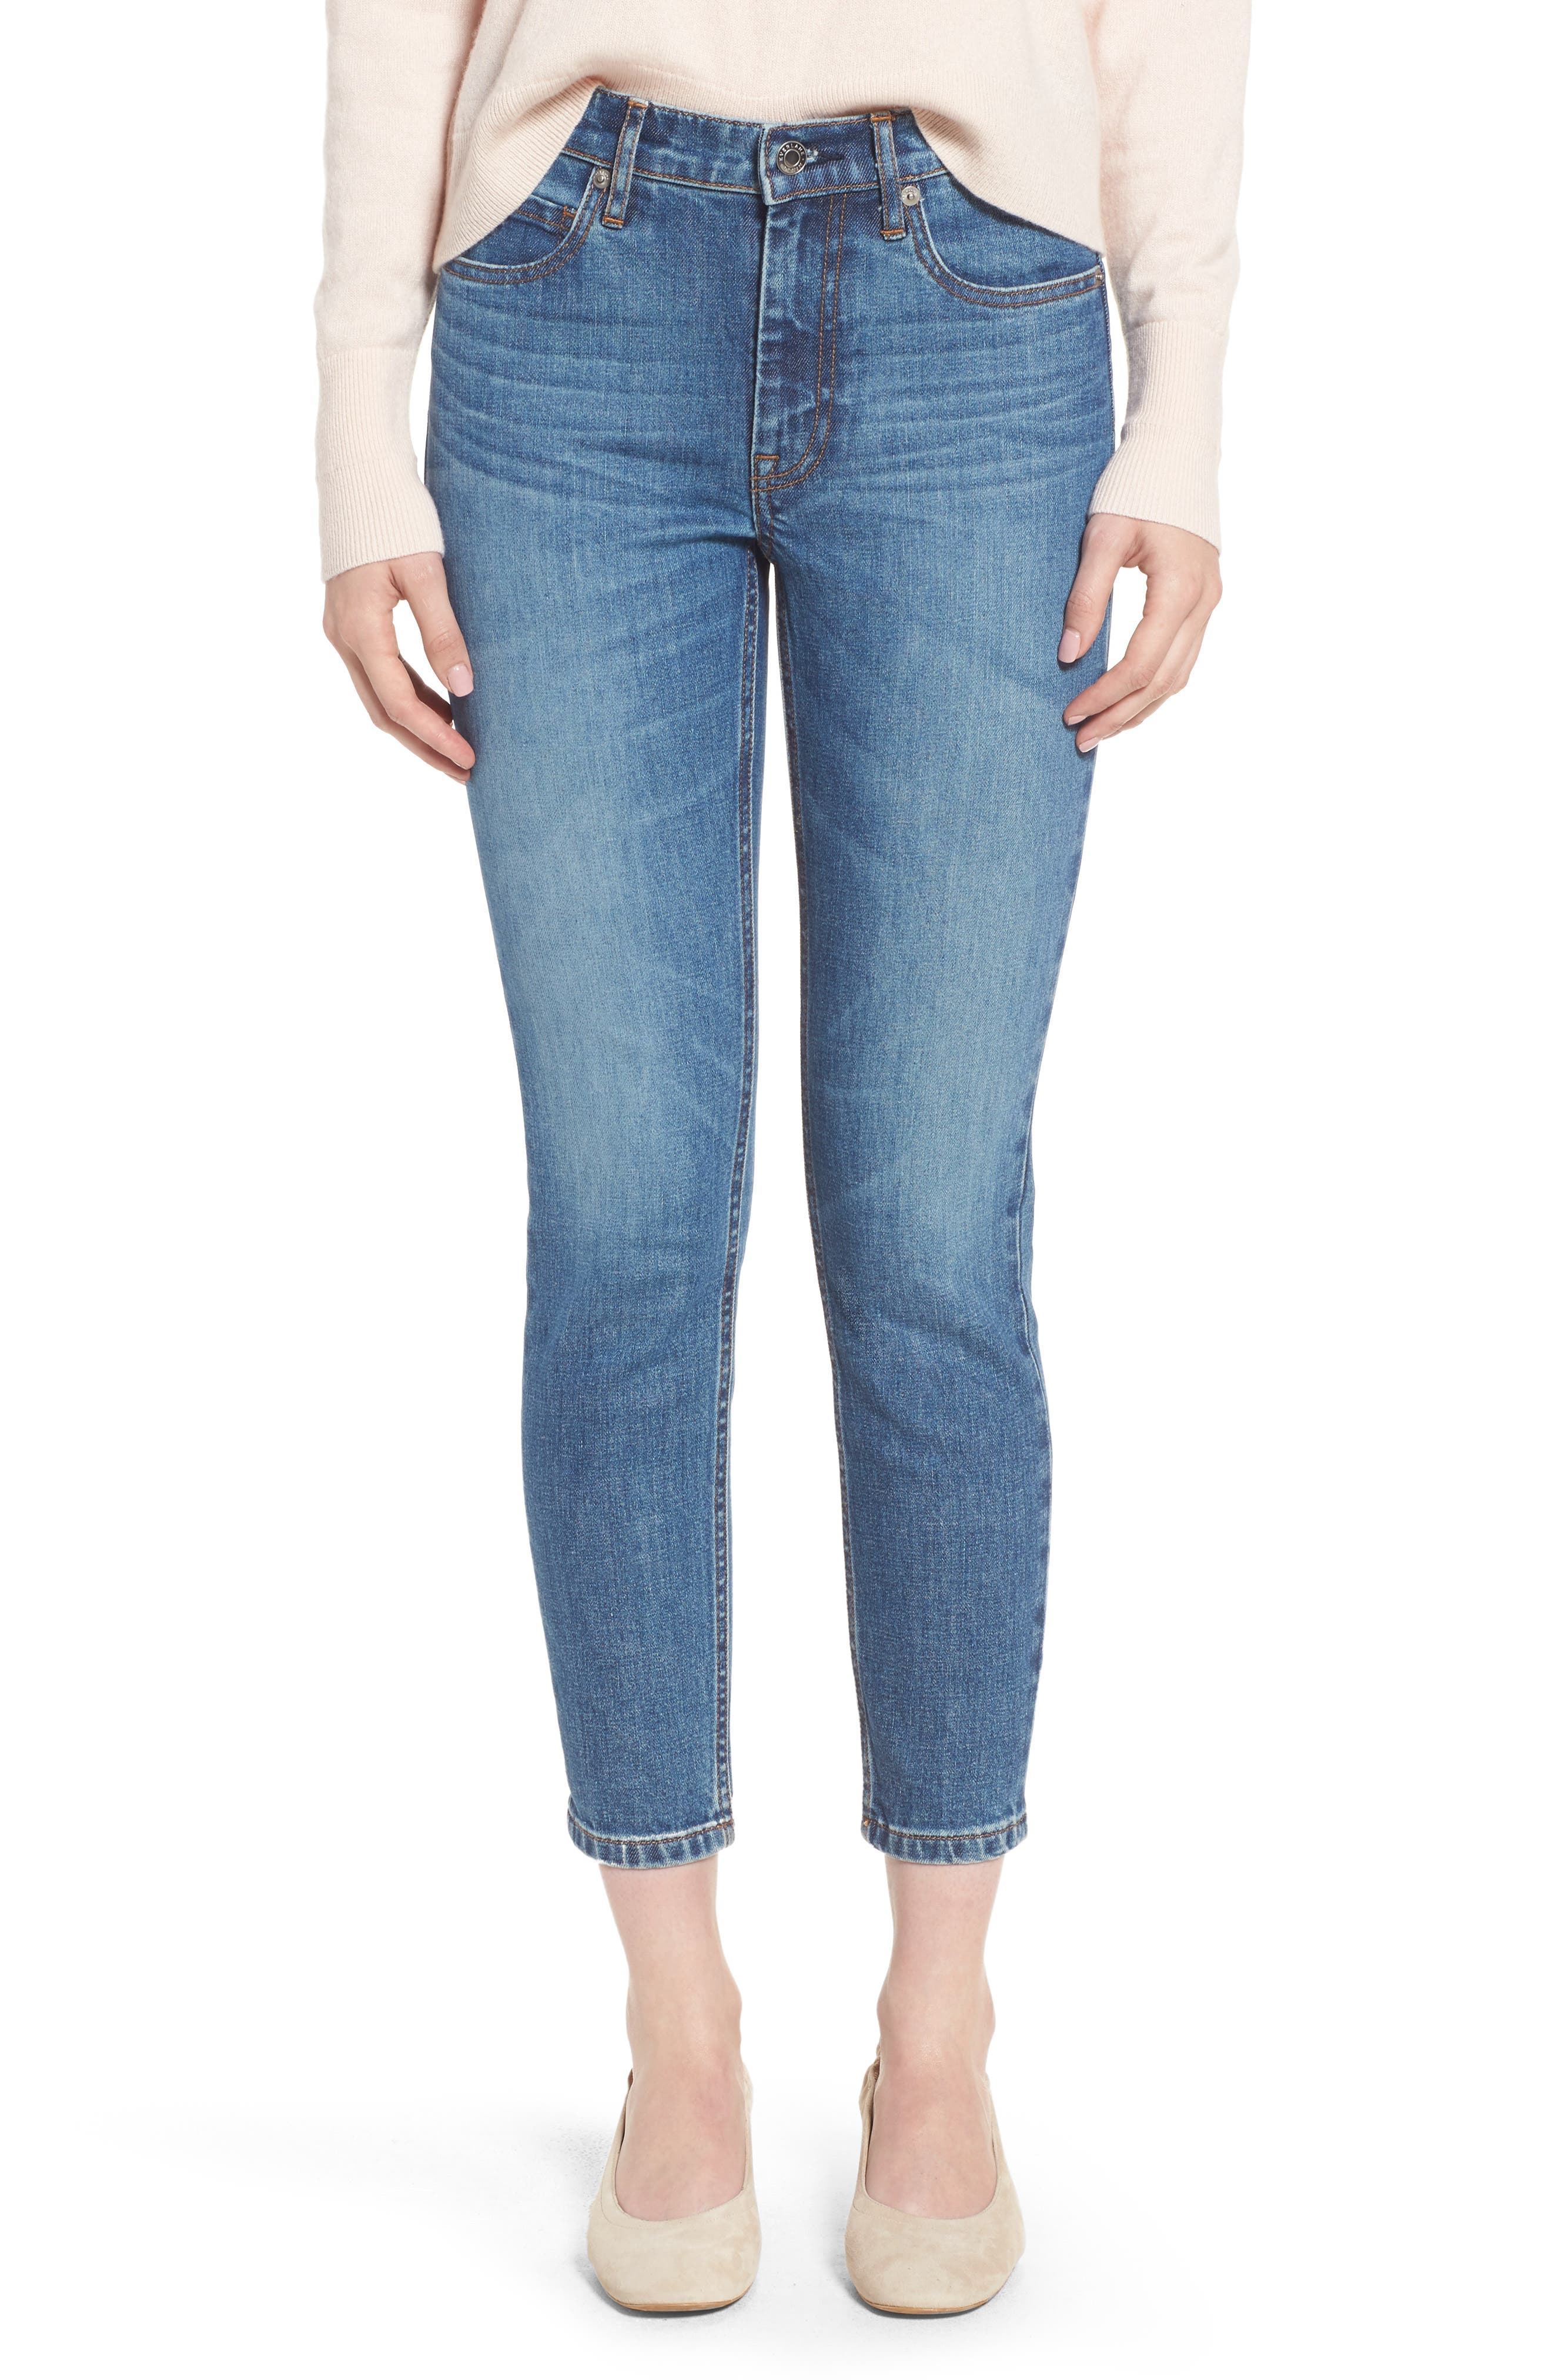 Everlane The Mid Rise Skinny Ankle Jeans